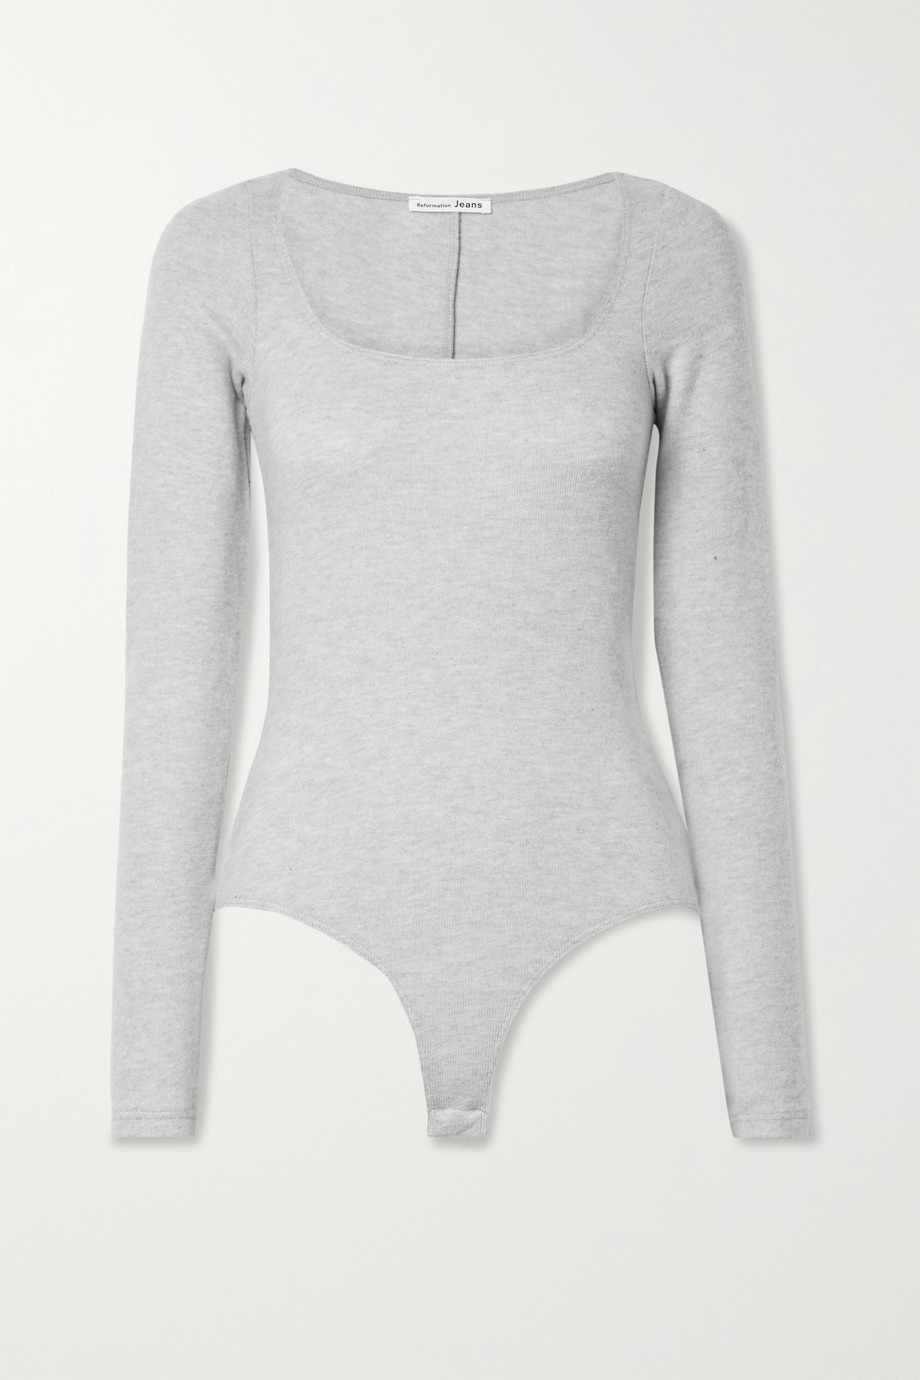 Reformation Katie brushed stretch-TENCEL Lyocell and organic cotton-blend bodysuit